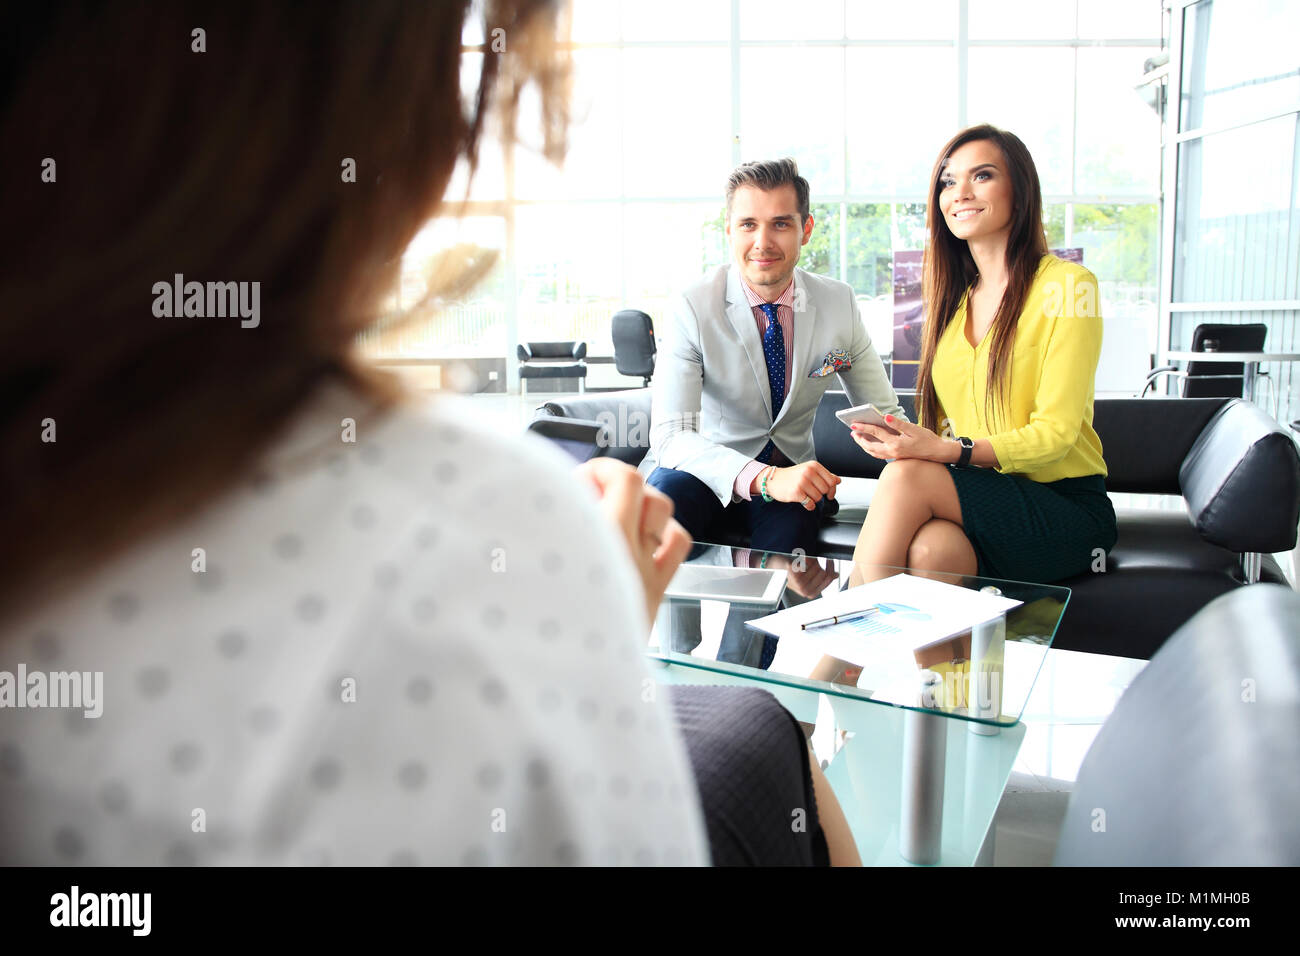 Business People Meeting Conference Discussion Corporate Concept. - Stock Image